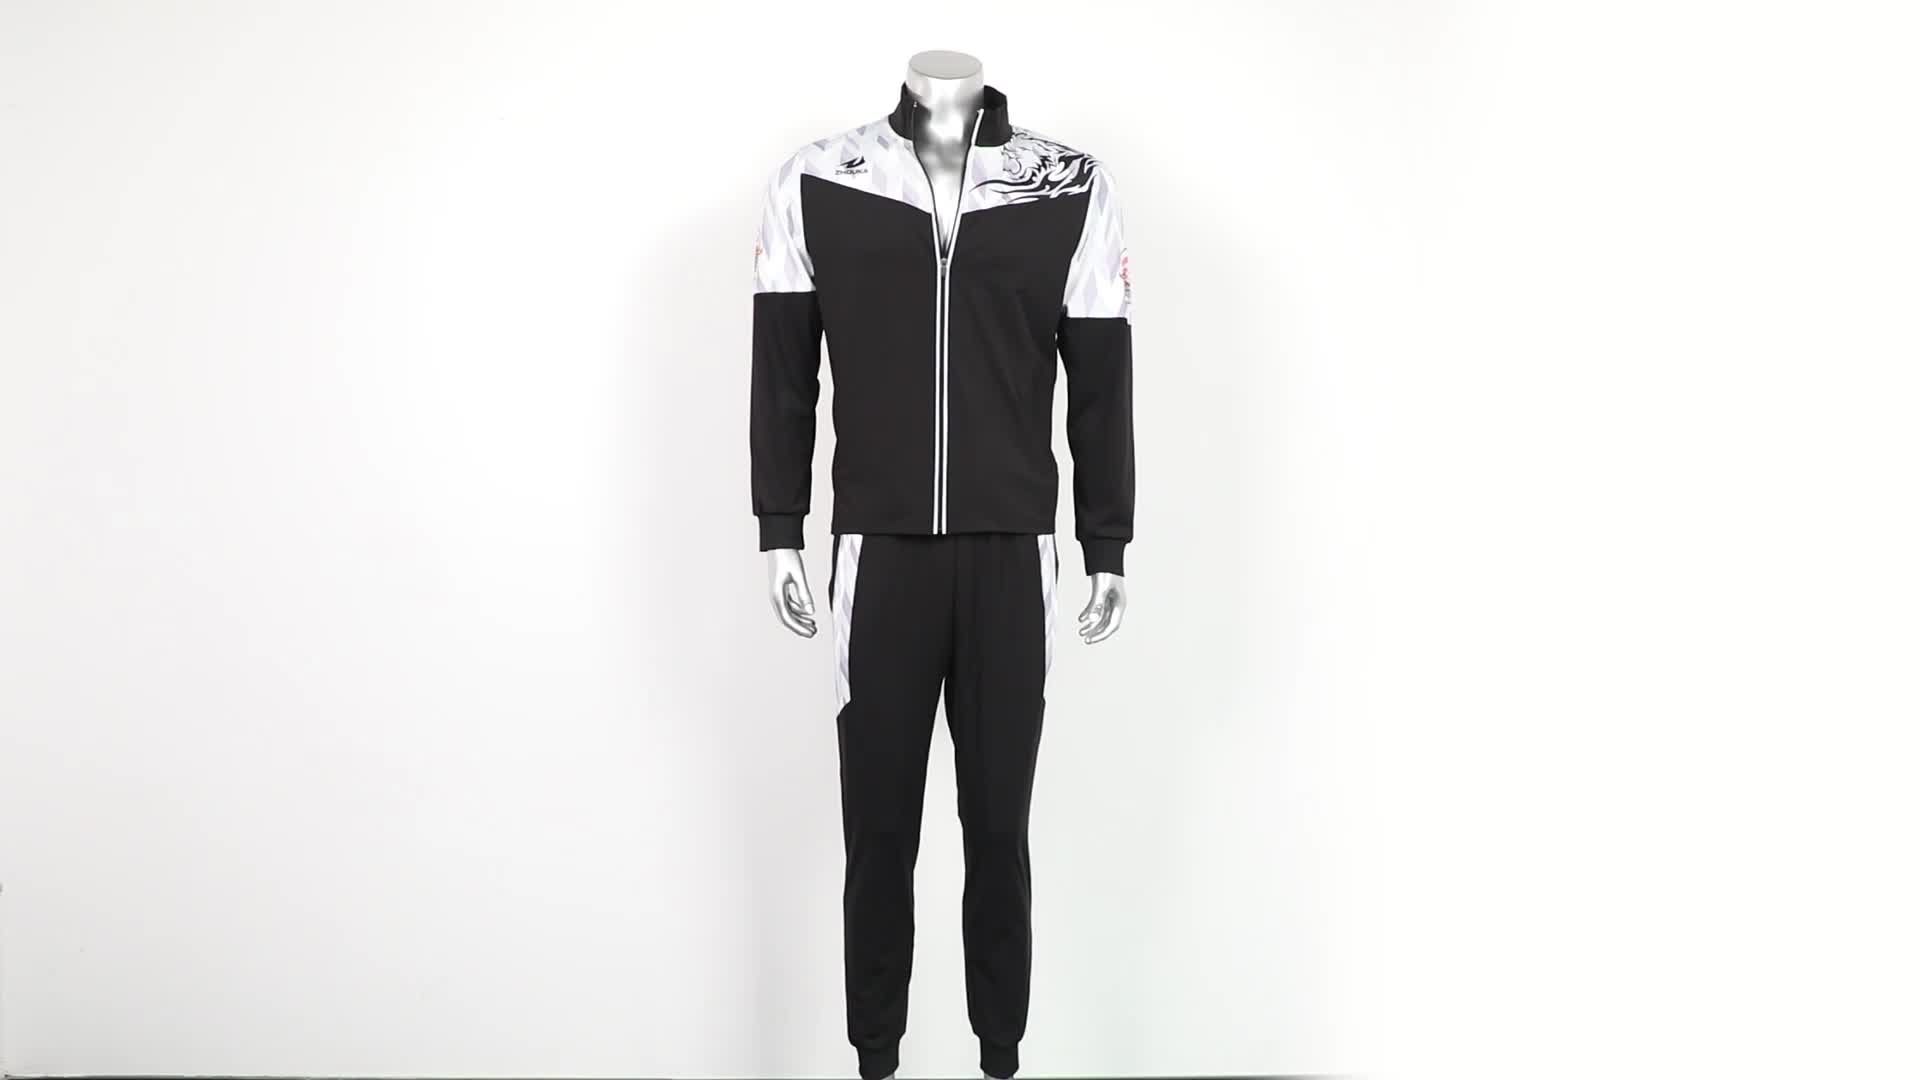 ZHOUKA New latest arrival men sportswear jogging suit winter jacket mesh tracksuit